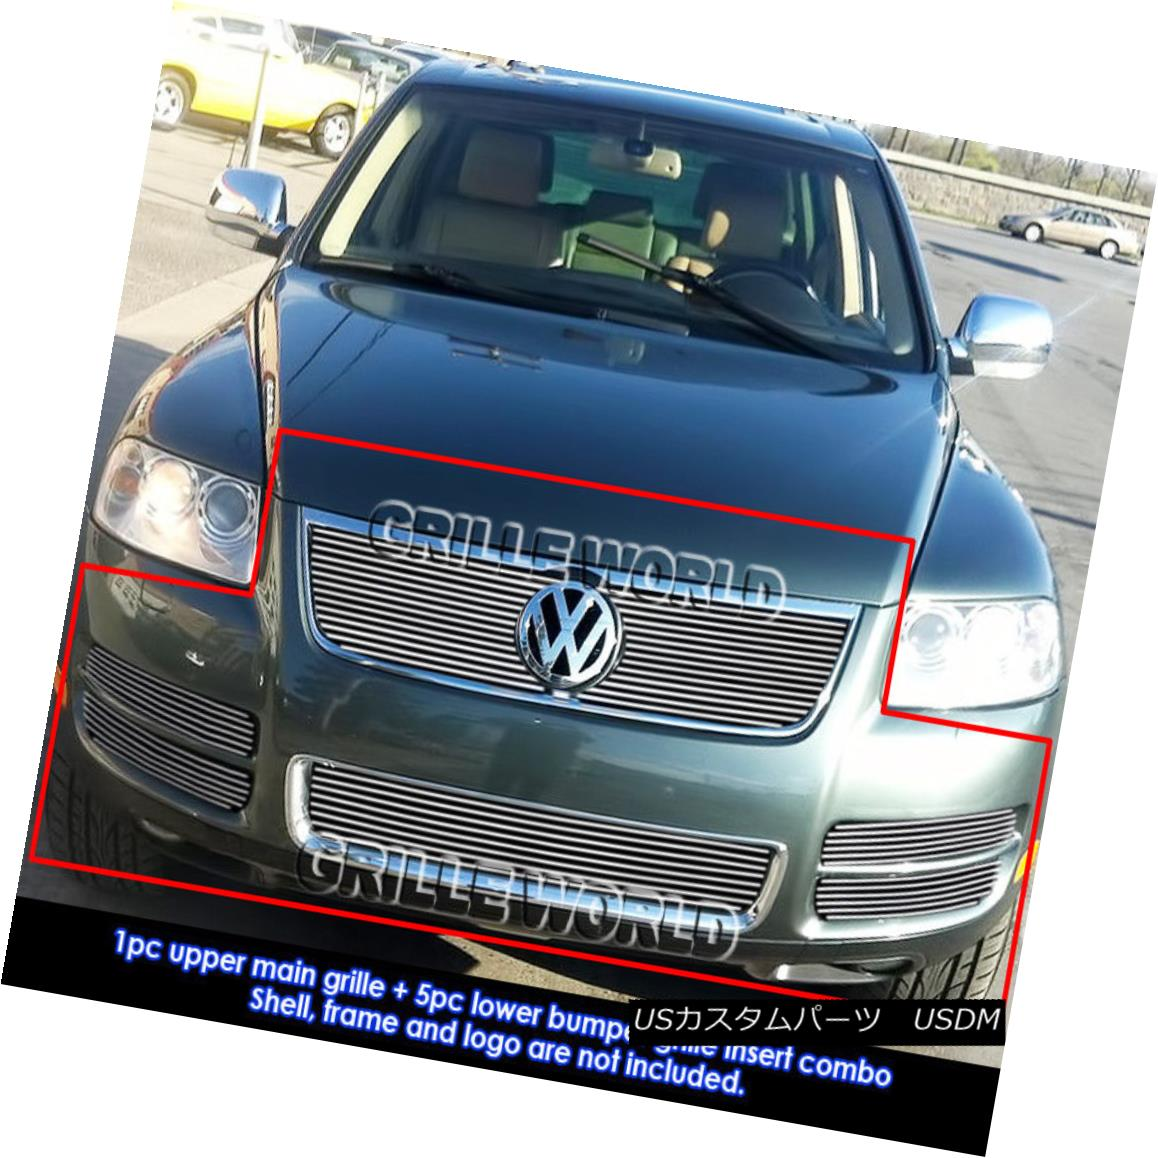 グリル For 2003-2007 VW Touareg With Chrome Trim V8 Billet Grille Grill Combo Insert 2003-2007 VW Touareg With ChromeトリムV8ビレットグリルグリルコンボインサート